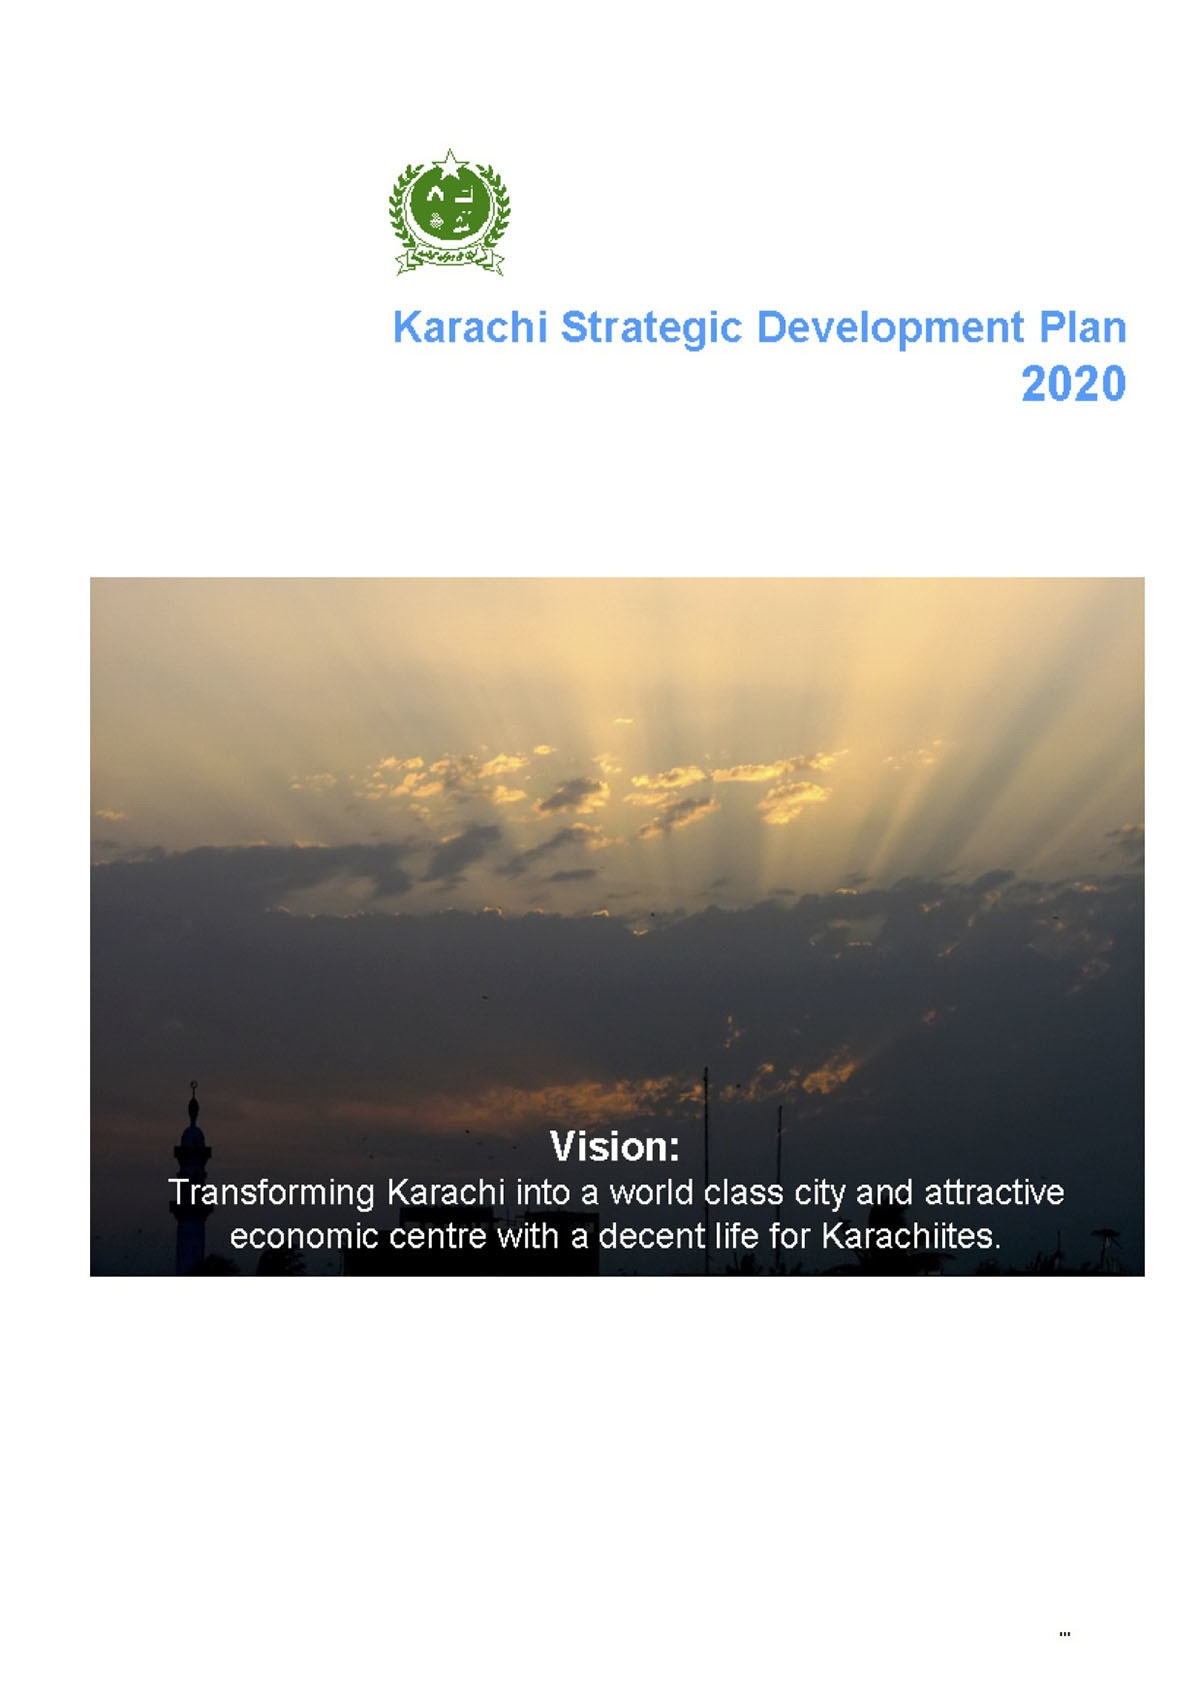 A page from the Karachi Strategic Development Plan 2020, published by the City District Government Karachi (CDGK), 2007